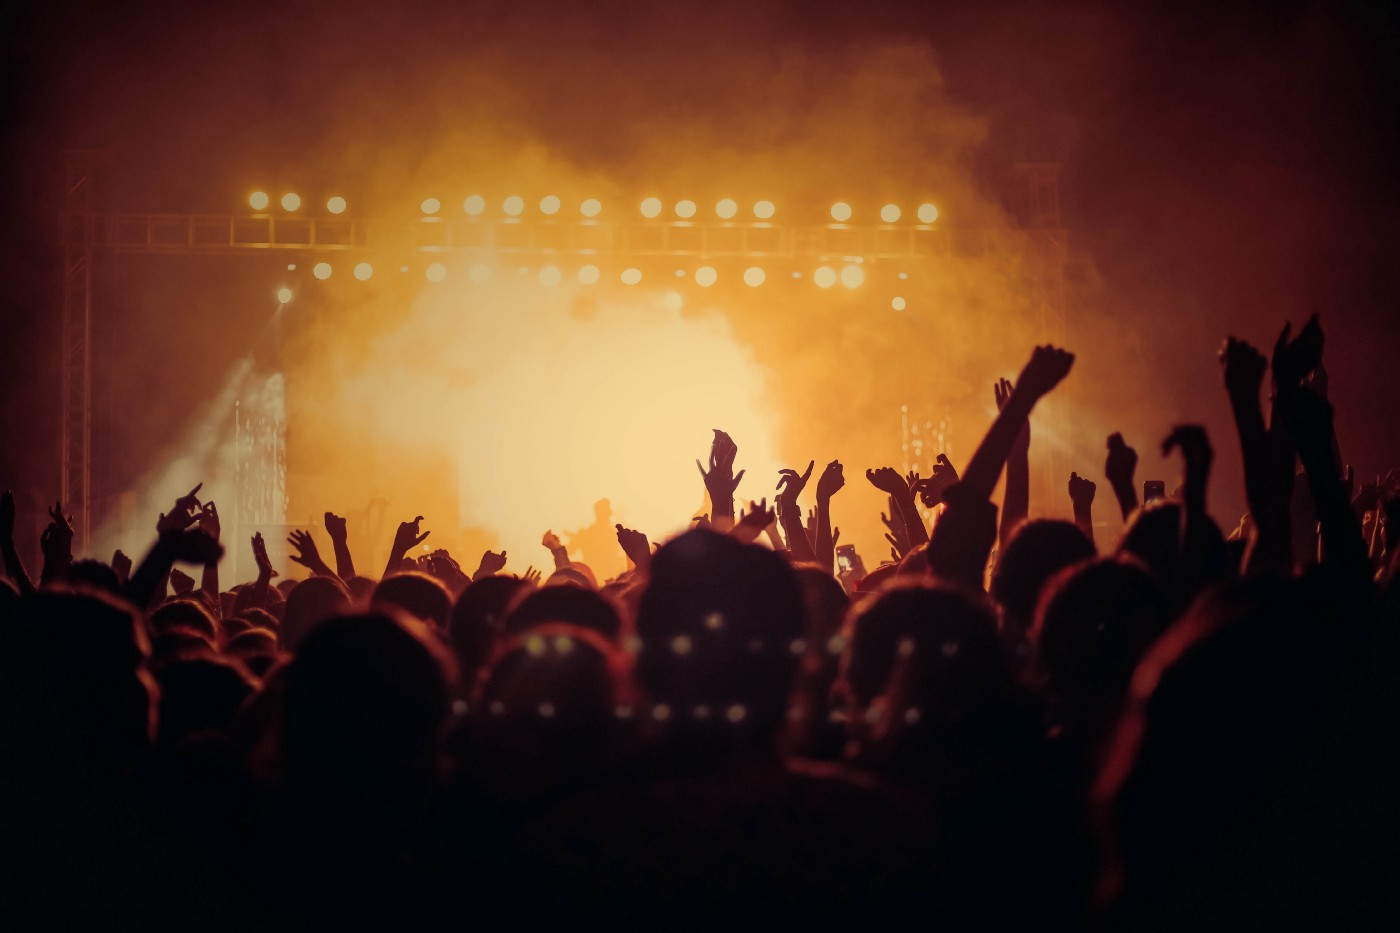 image of a concert with stage lights in background and crowd with hands lifted in silloutette foreground.